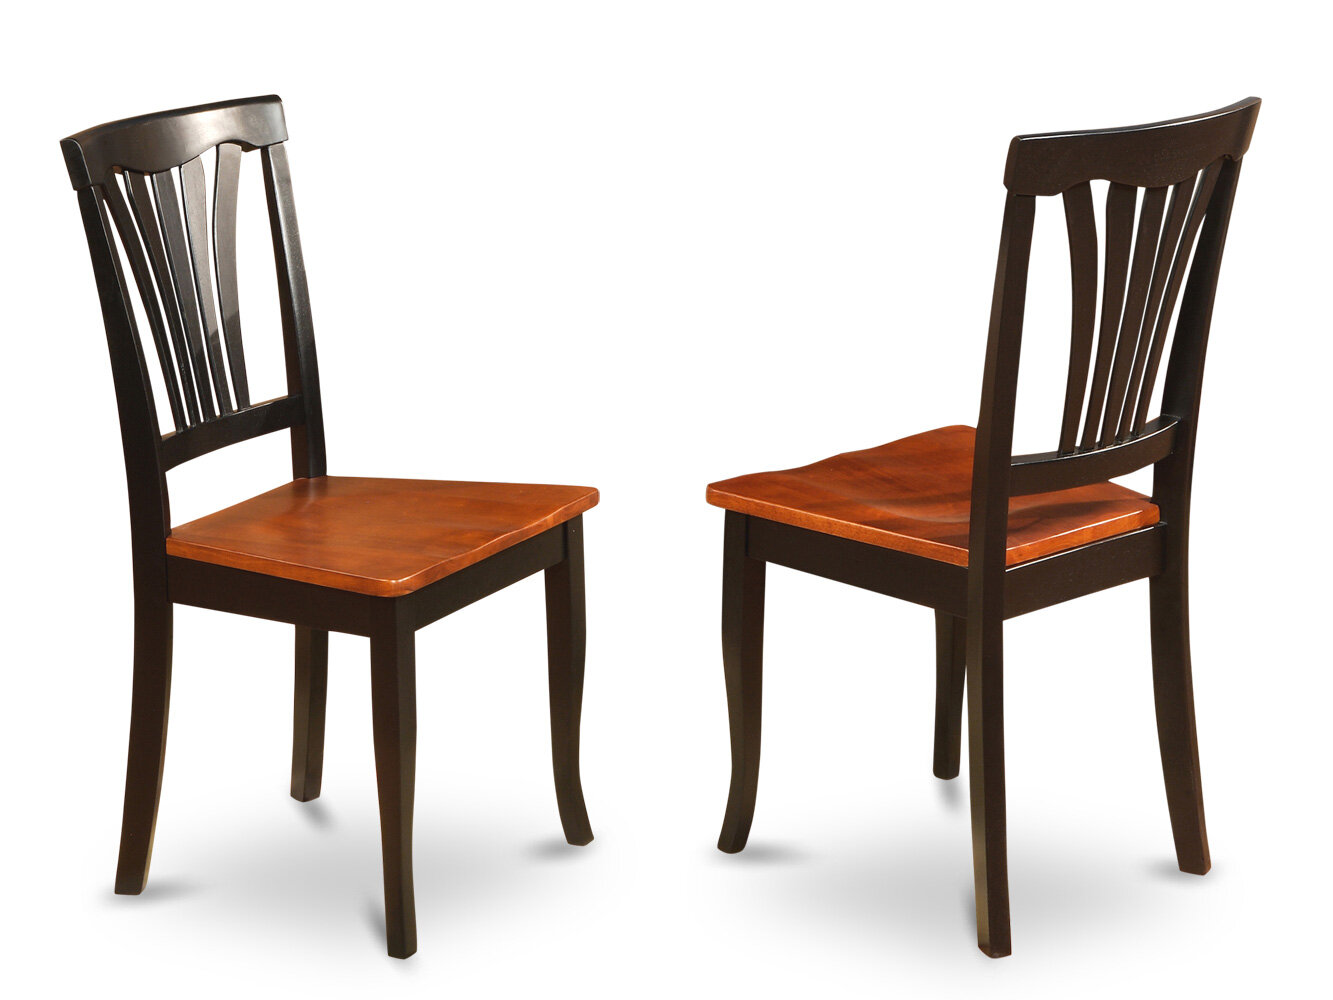 Wayfair Dining Room Chair Covers: Darby Home Co Attamore Solid Wood Dining Chair